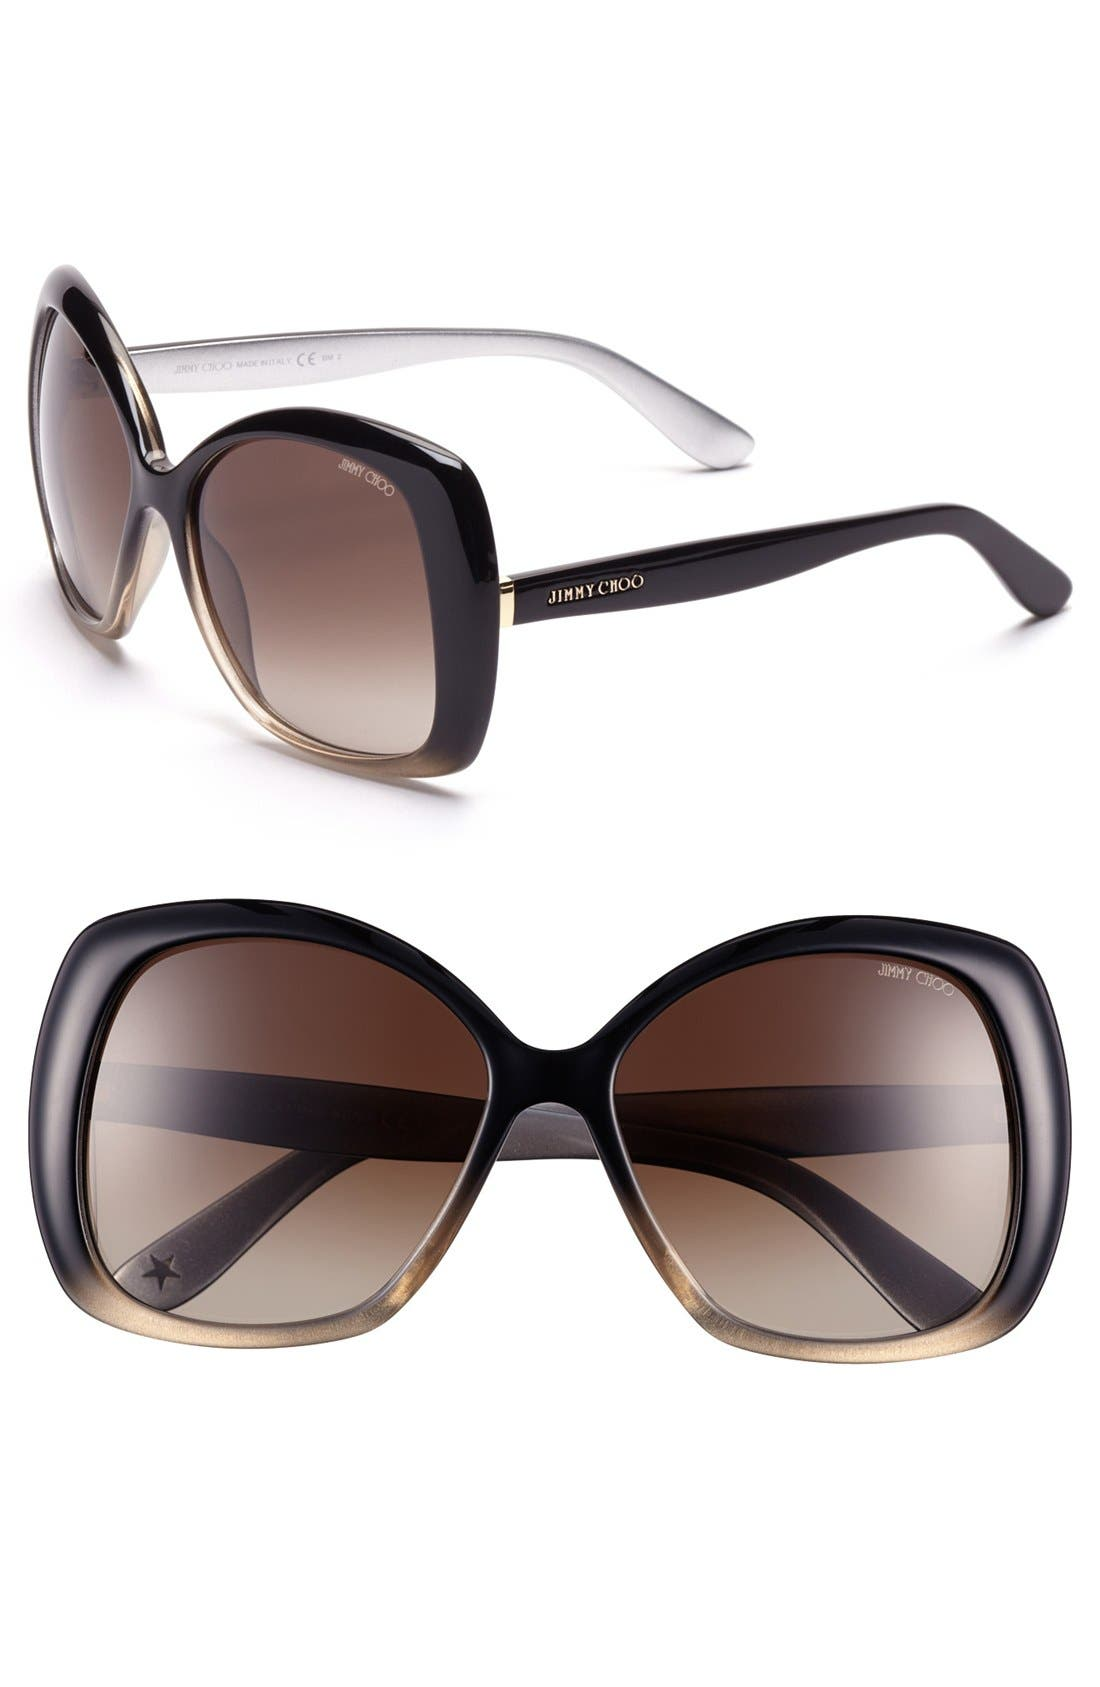 Main Image - Jimmy Choo 'Marty' 57mm Sunglasses